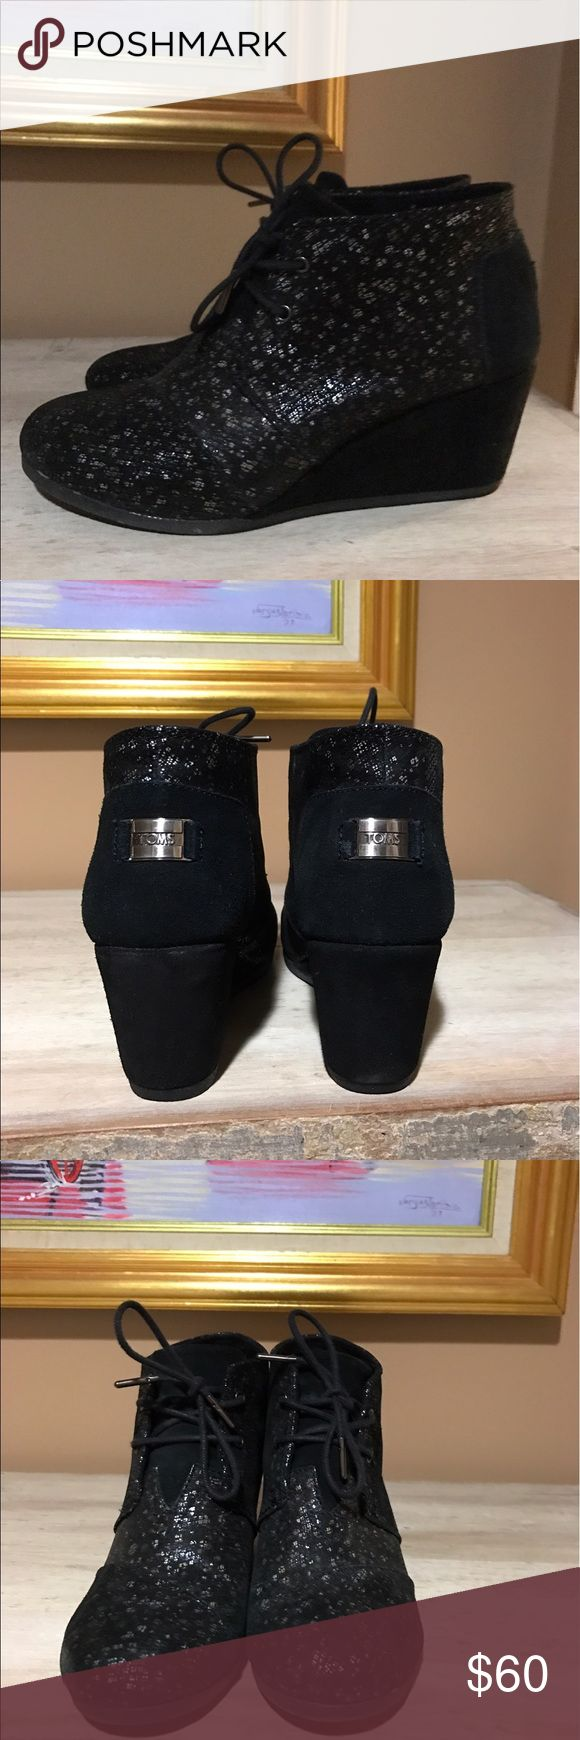 Toms Desert Wedge Bootie Black with specks.  Slightly padded sole.     A Very comfortable, every day shoe TOMS Shoes Ankle Boots & Booties